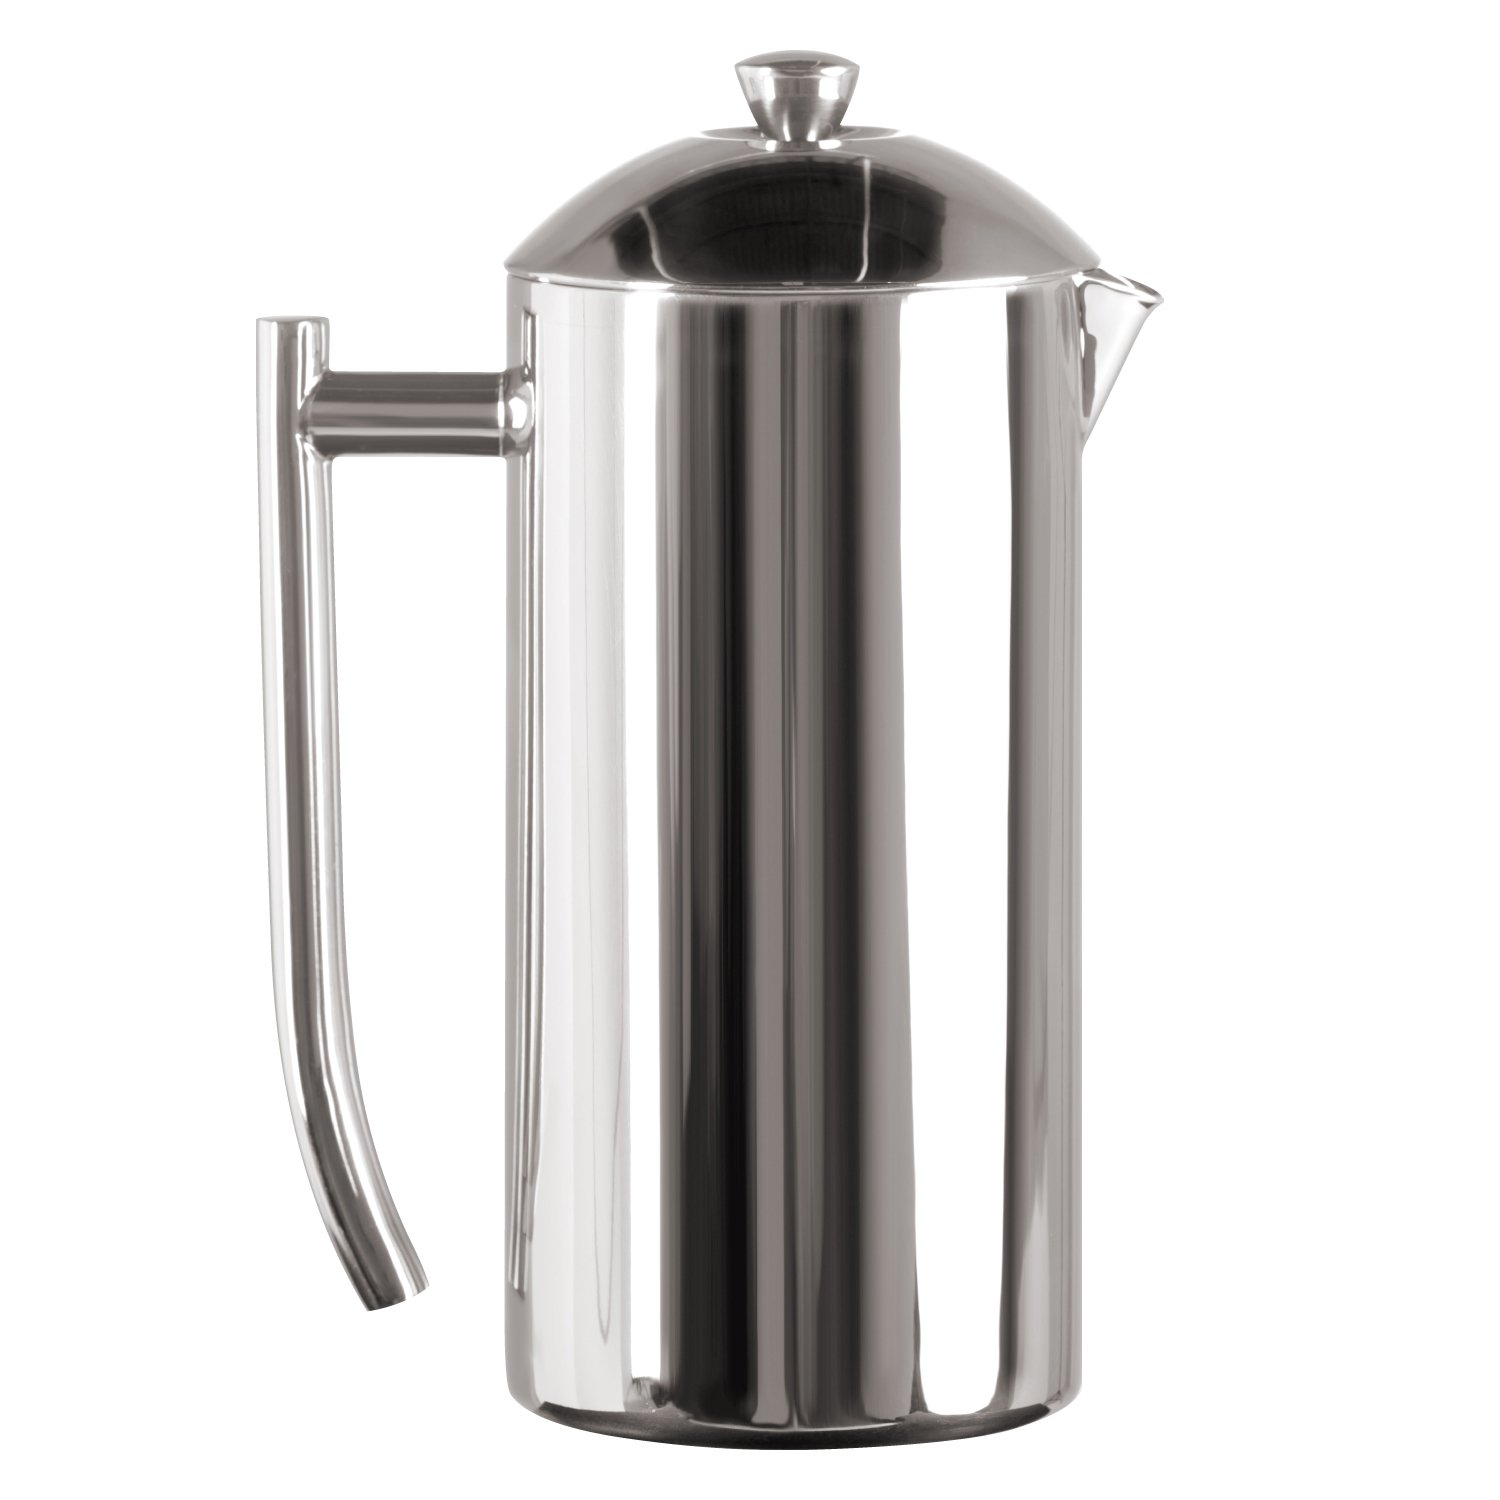 Bed bath beyond french press - Amazon Com Frieling Usa Double Wall Stainless Steel French Press Coffee Maker With Patented Dual Screen Polished 36 Ounce French Press Coffee Maker